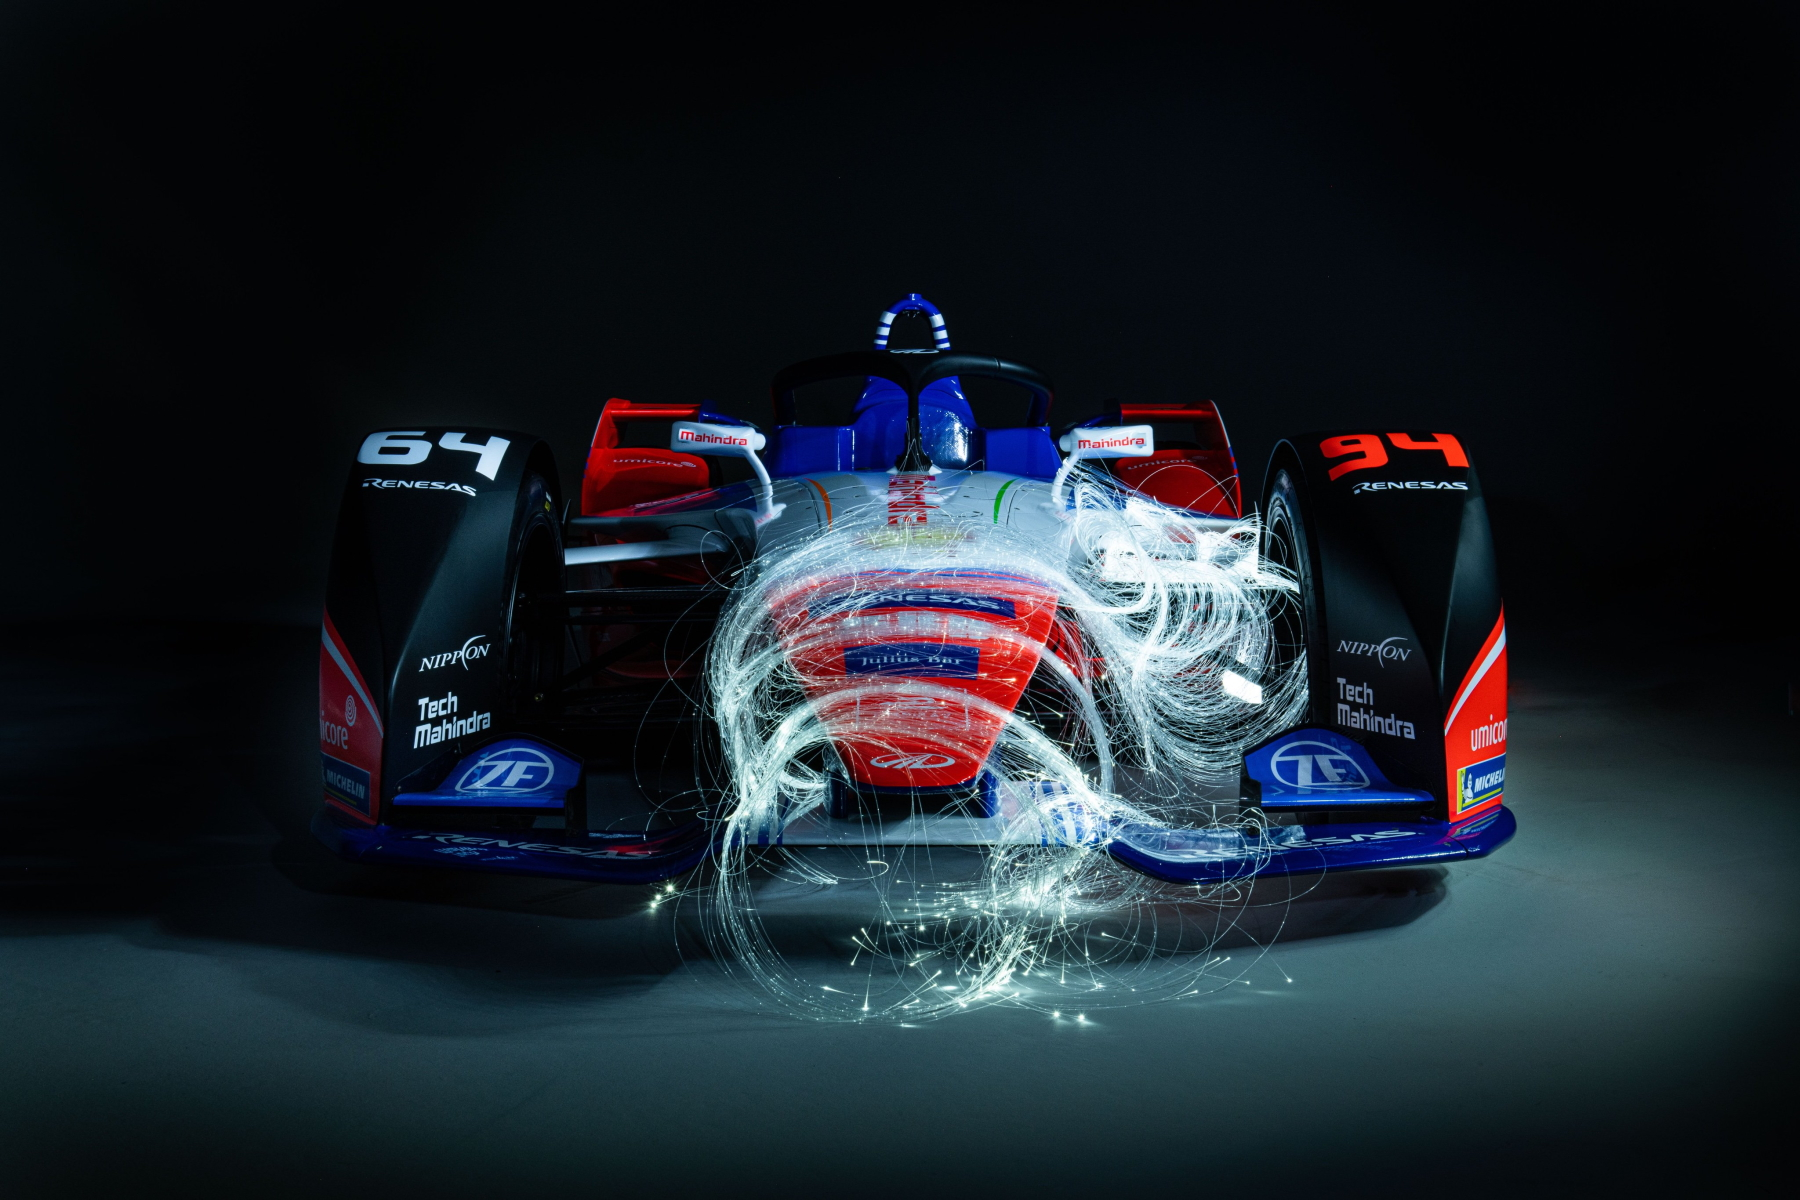 Mahindra Season 6 car photo art front view 1800px.jpg